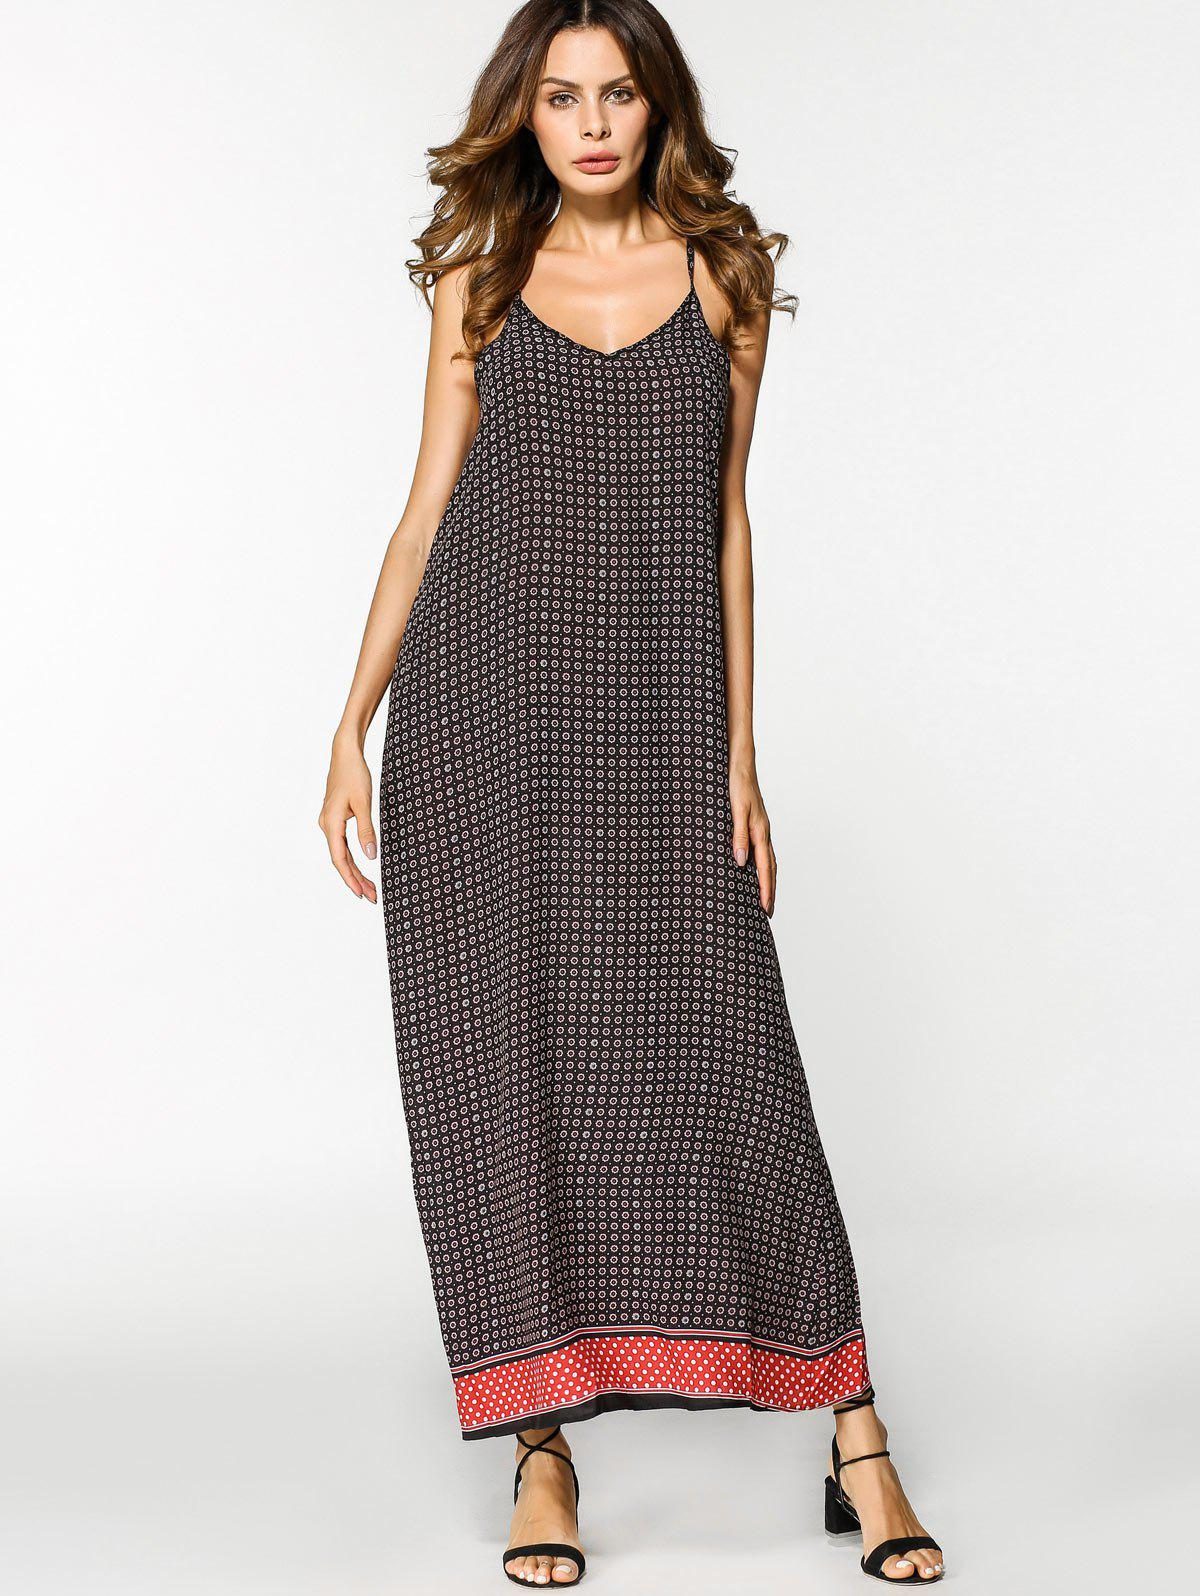 73dbfdcf53f3 78% OFF] Tribal Slip Swing Maxi Dress | Rosegal